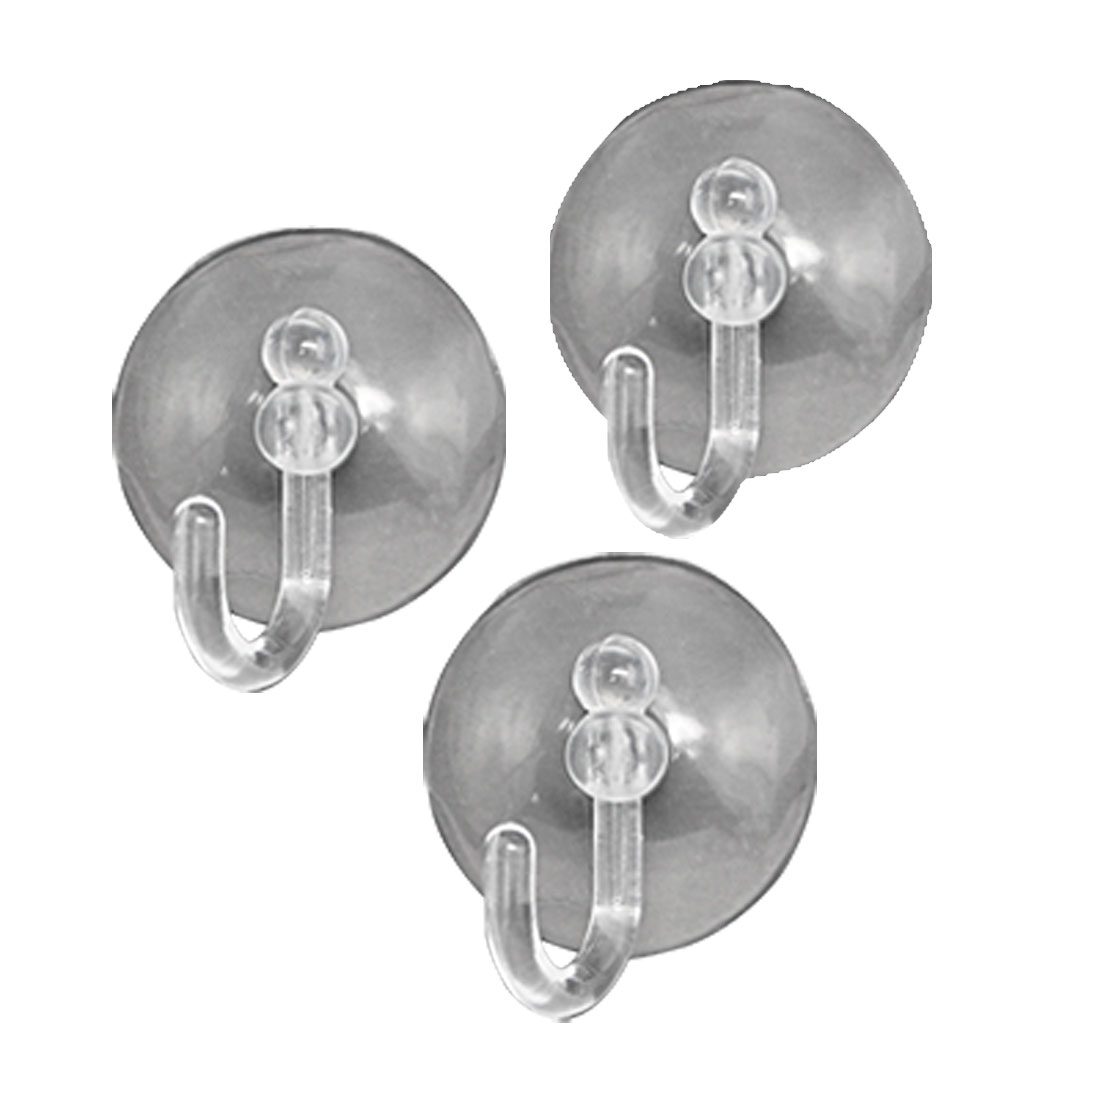 Clear Briefness Design Suction Cup Adhesion Hook 3PCs